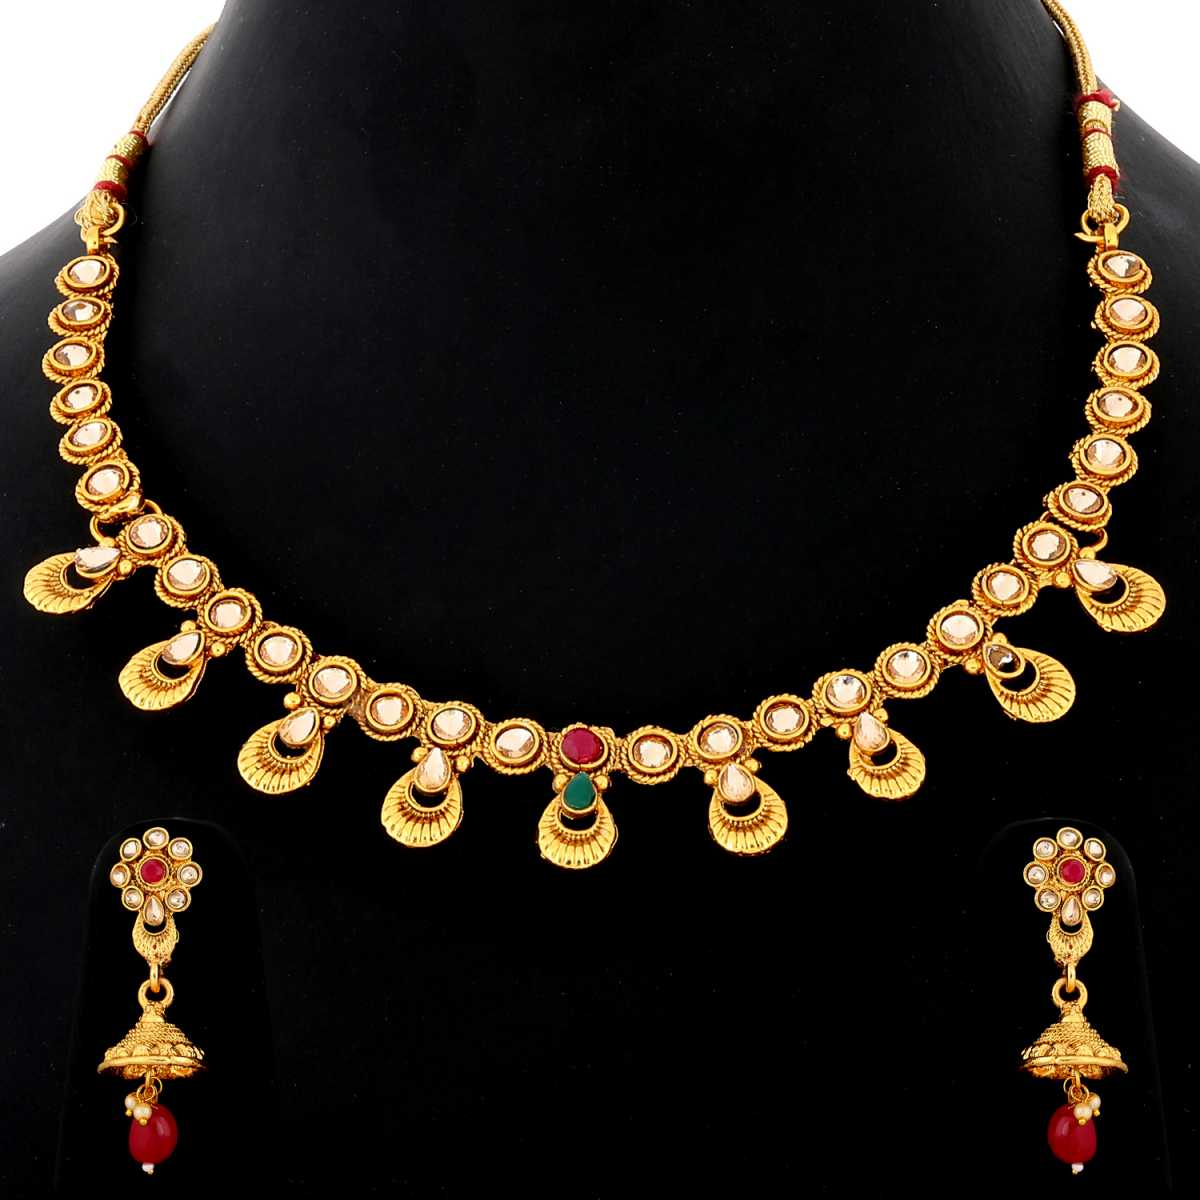 Silver Shine Exclusive Traditional Gold Plated Red and Green Kundan stone studded Designer Bridal Wedding Necklace Jewellery Set for Girls And women